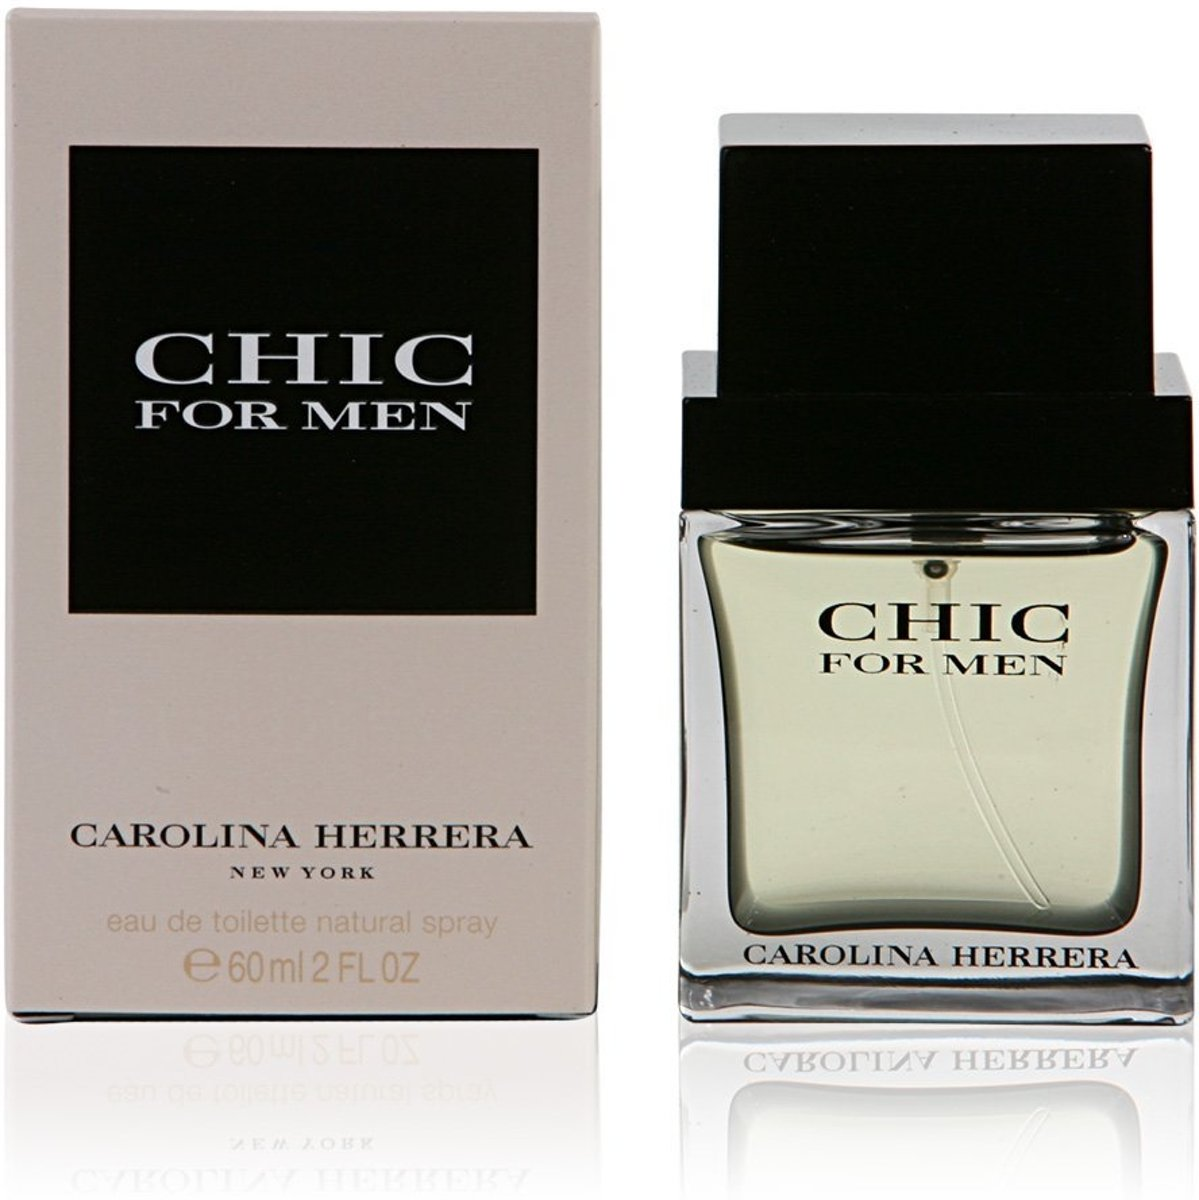 Carolina Herrera Chic - 60 ml - Eau de toilette